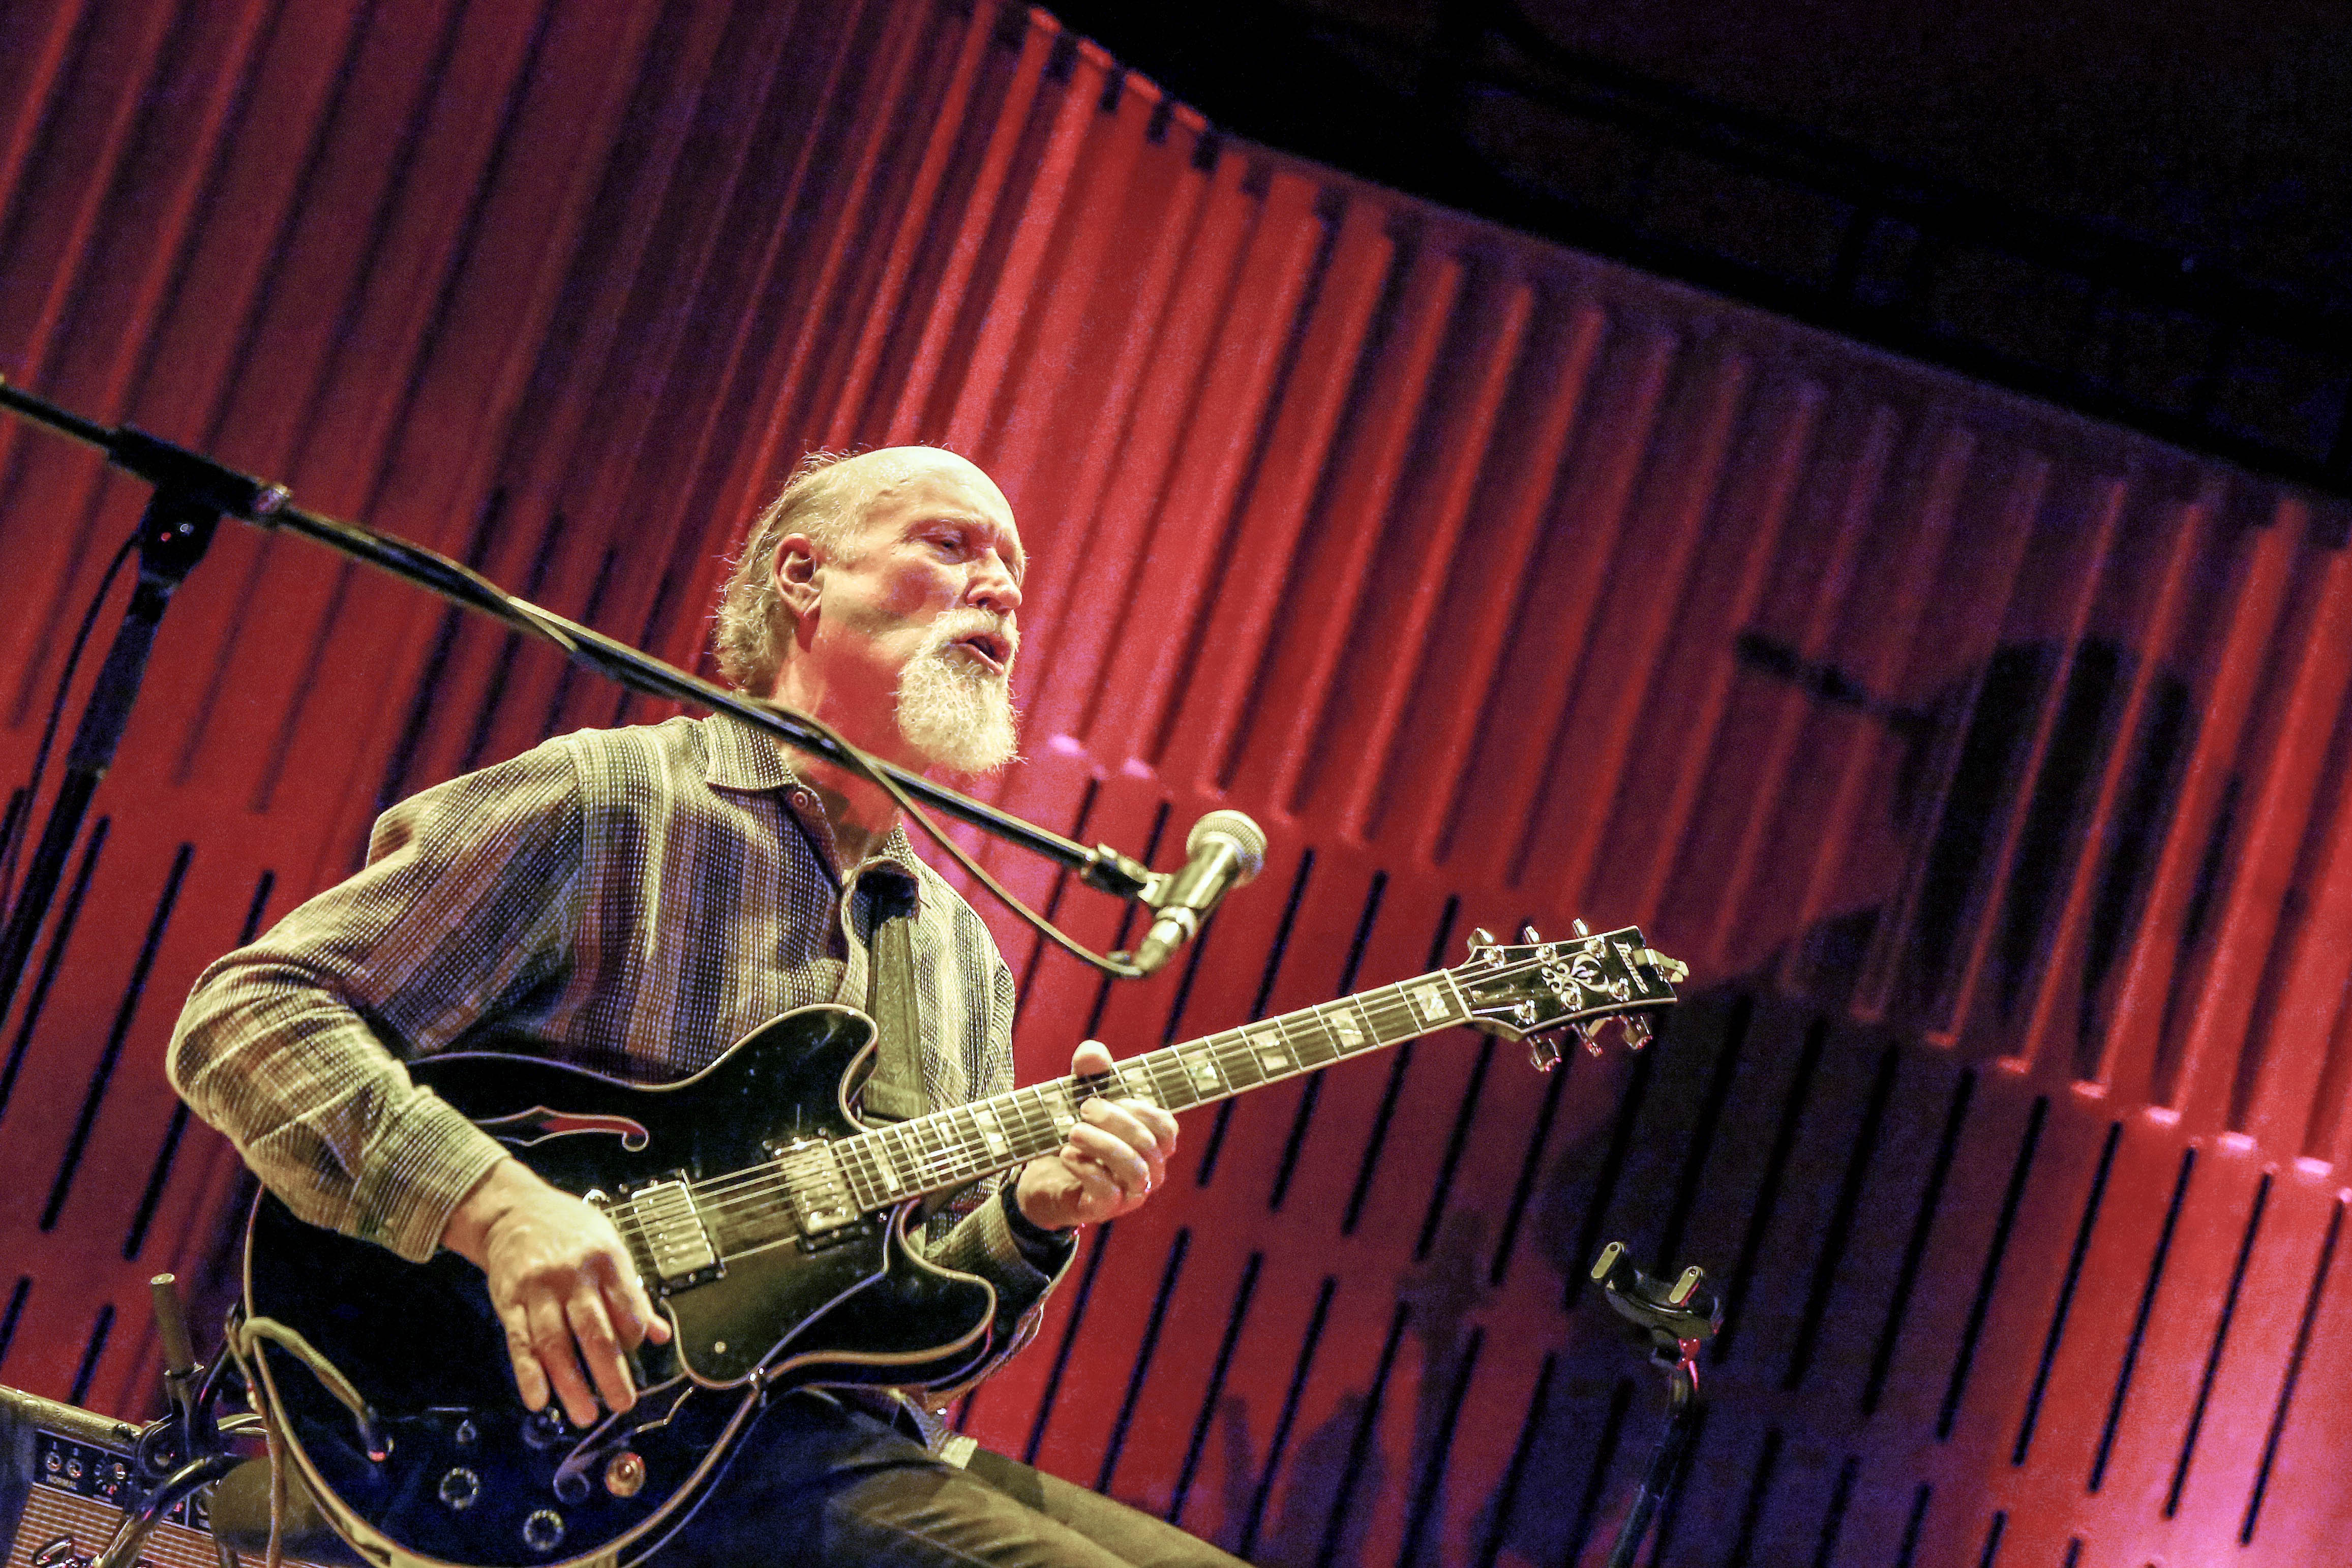 John Scofield – Howard Assembly Room, Leeds, 13/02/2019